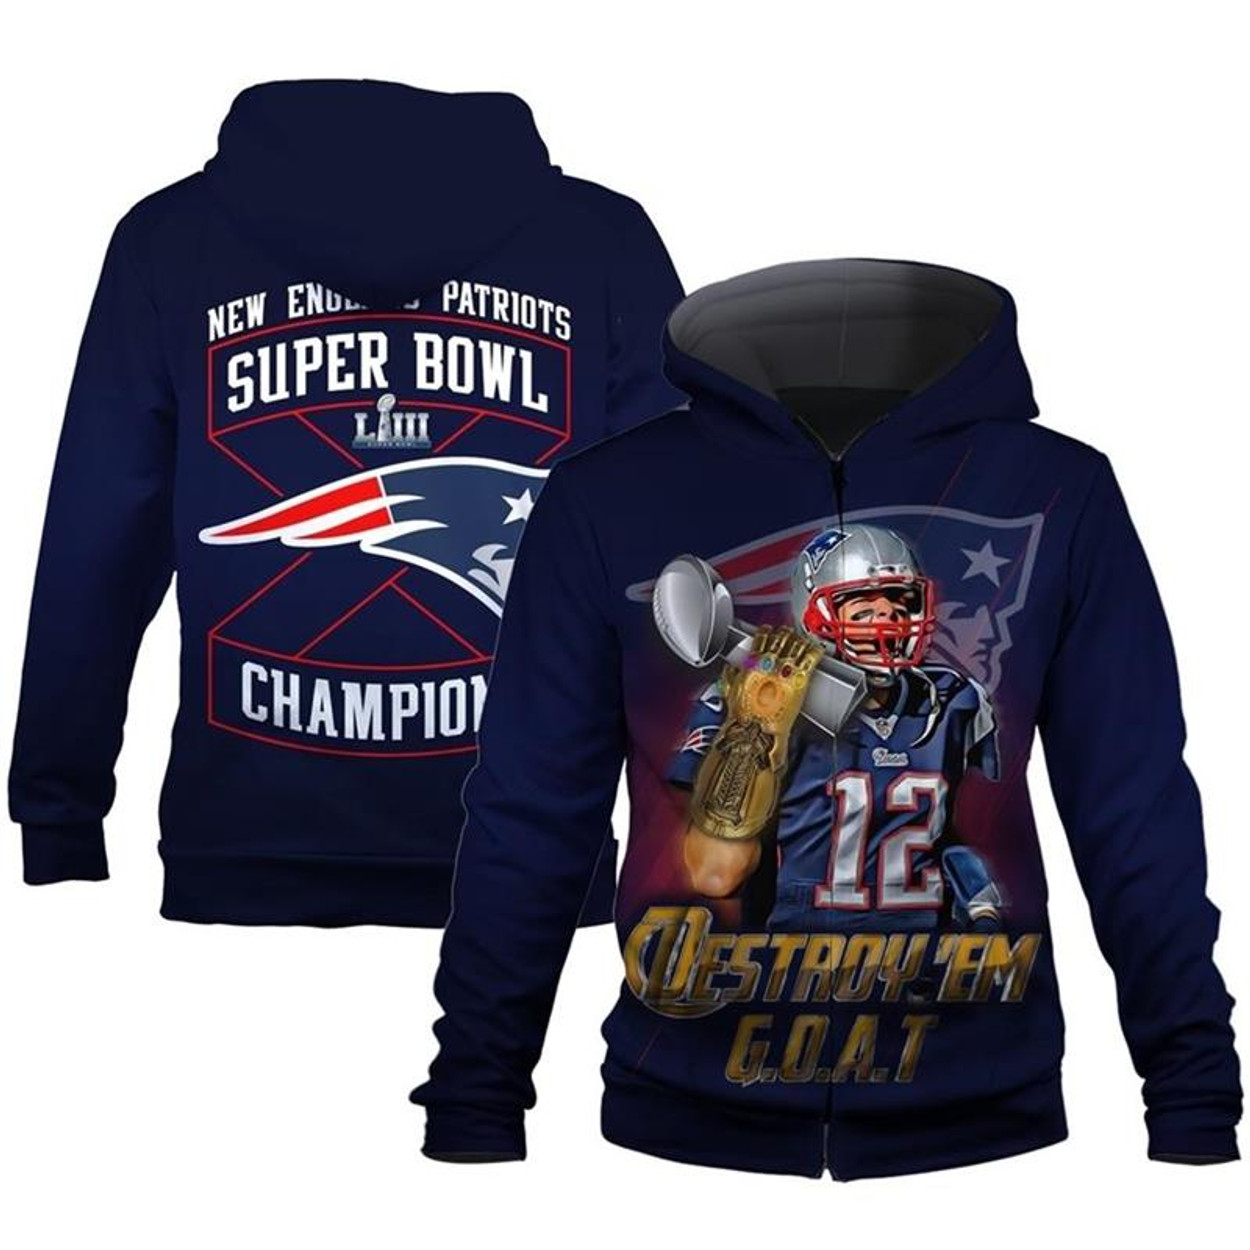 (OFFICIALLY-LICENSED-N.F.L.NEW-ENGLAND-PATRIOTS-SUPER-BOWL-CHAMPIONS-LIII  ... d9e571f89